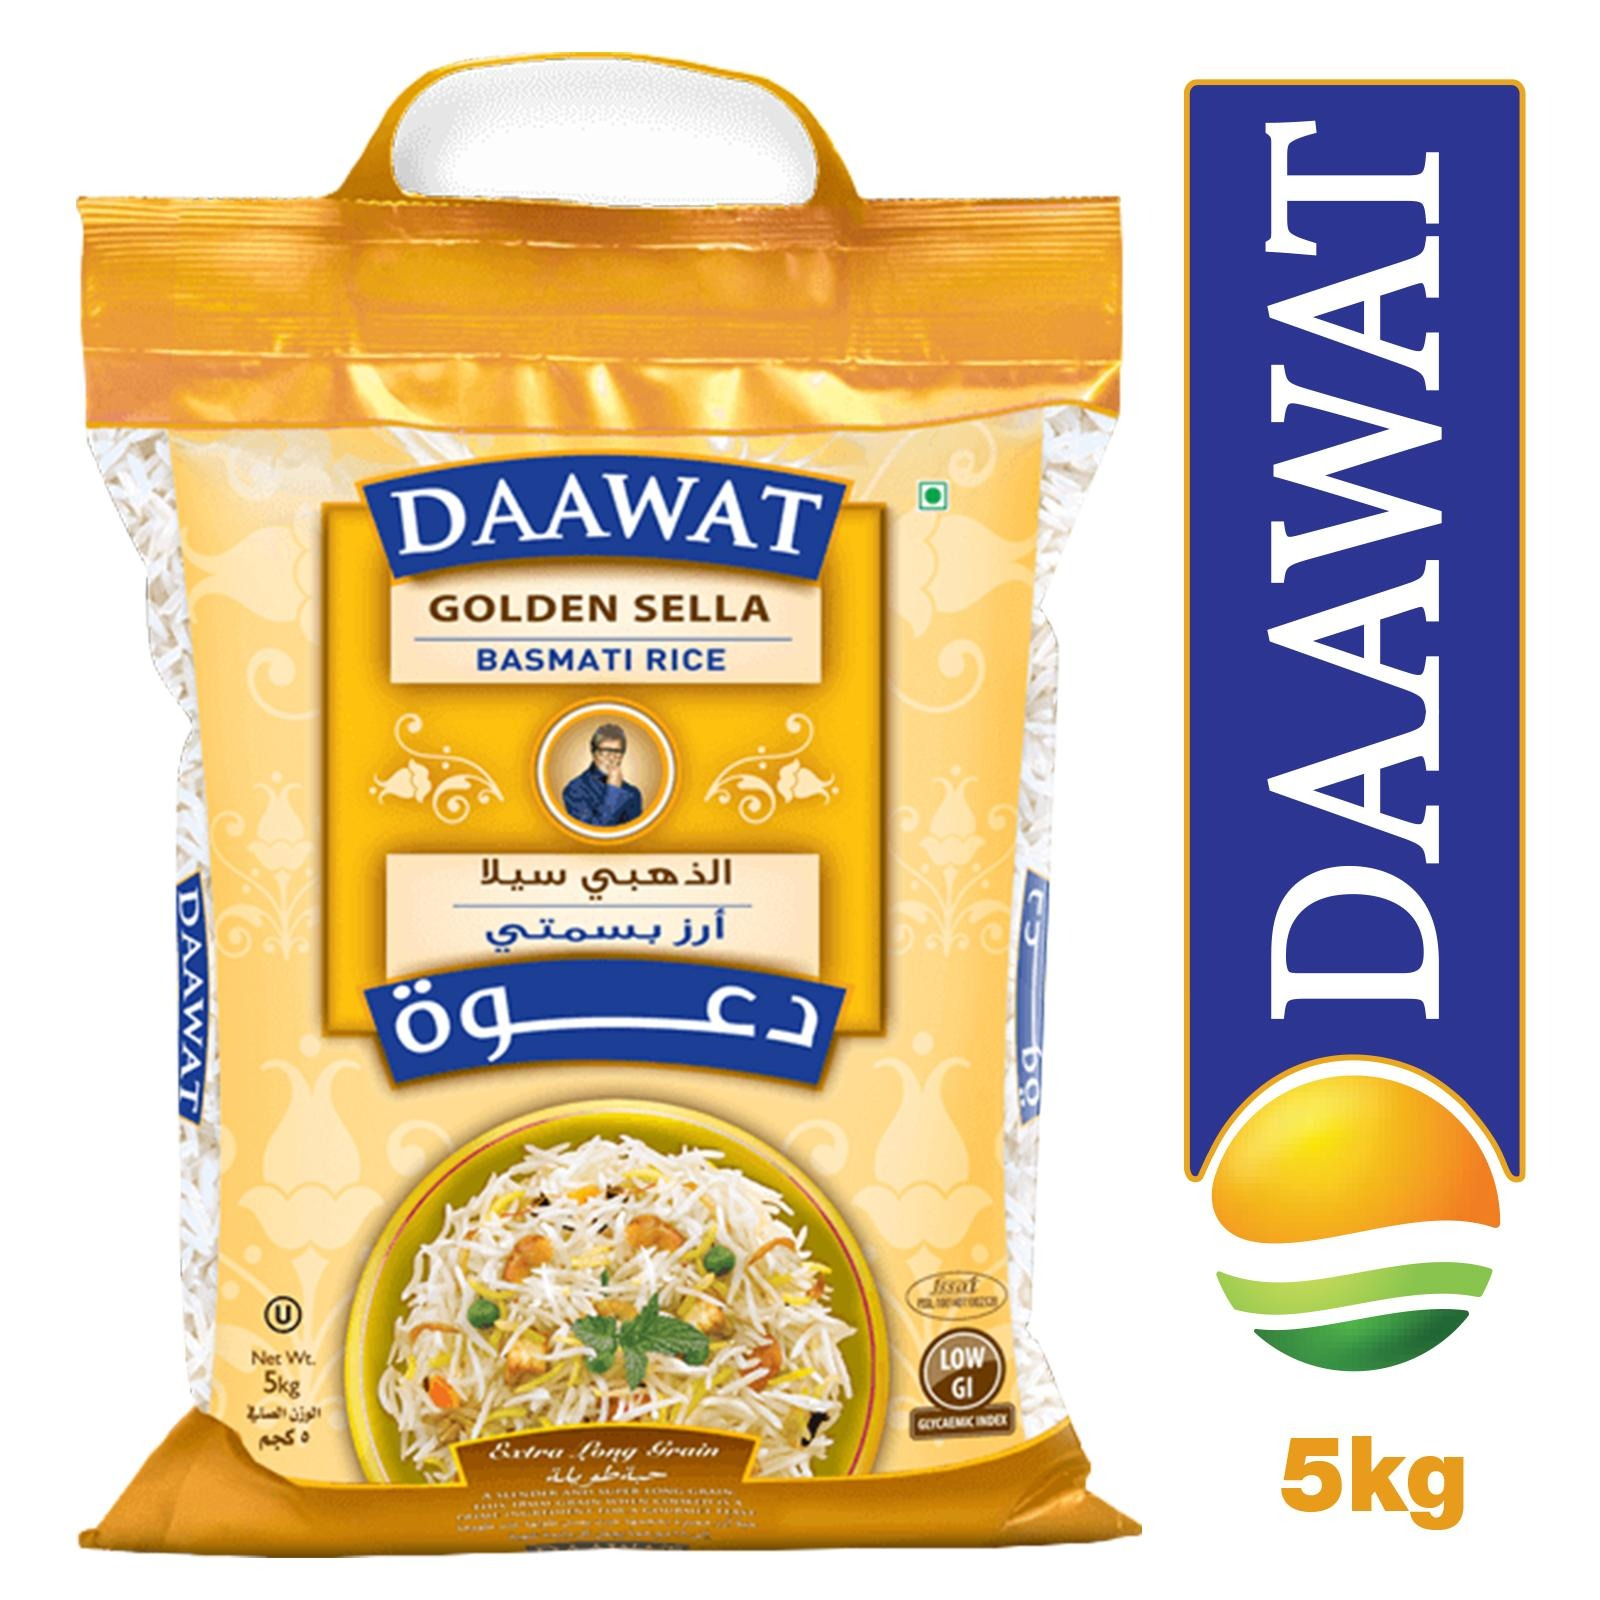 Daawat Golden Sella Basmati Rice - By Sonnamera